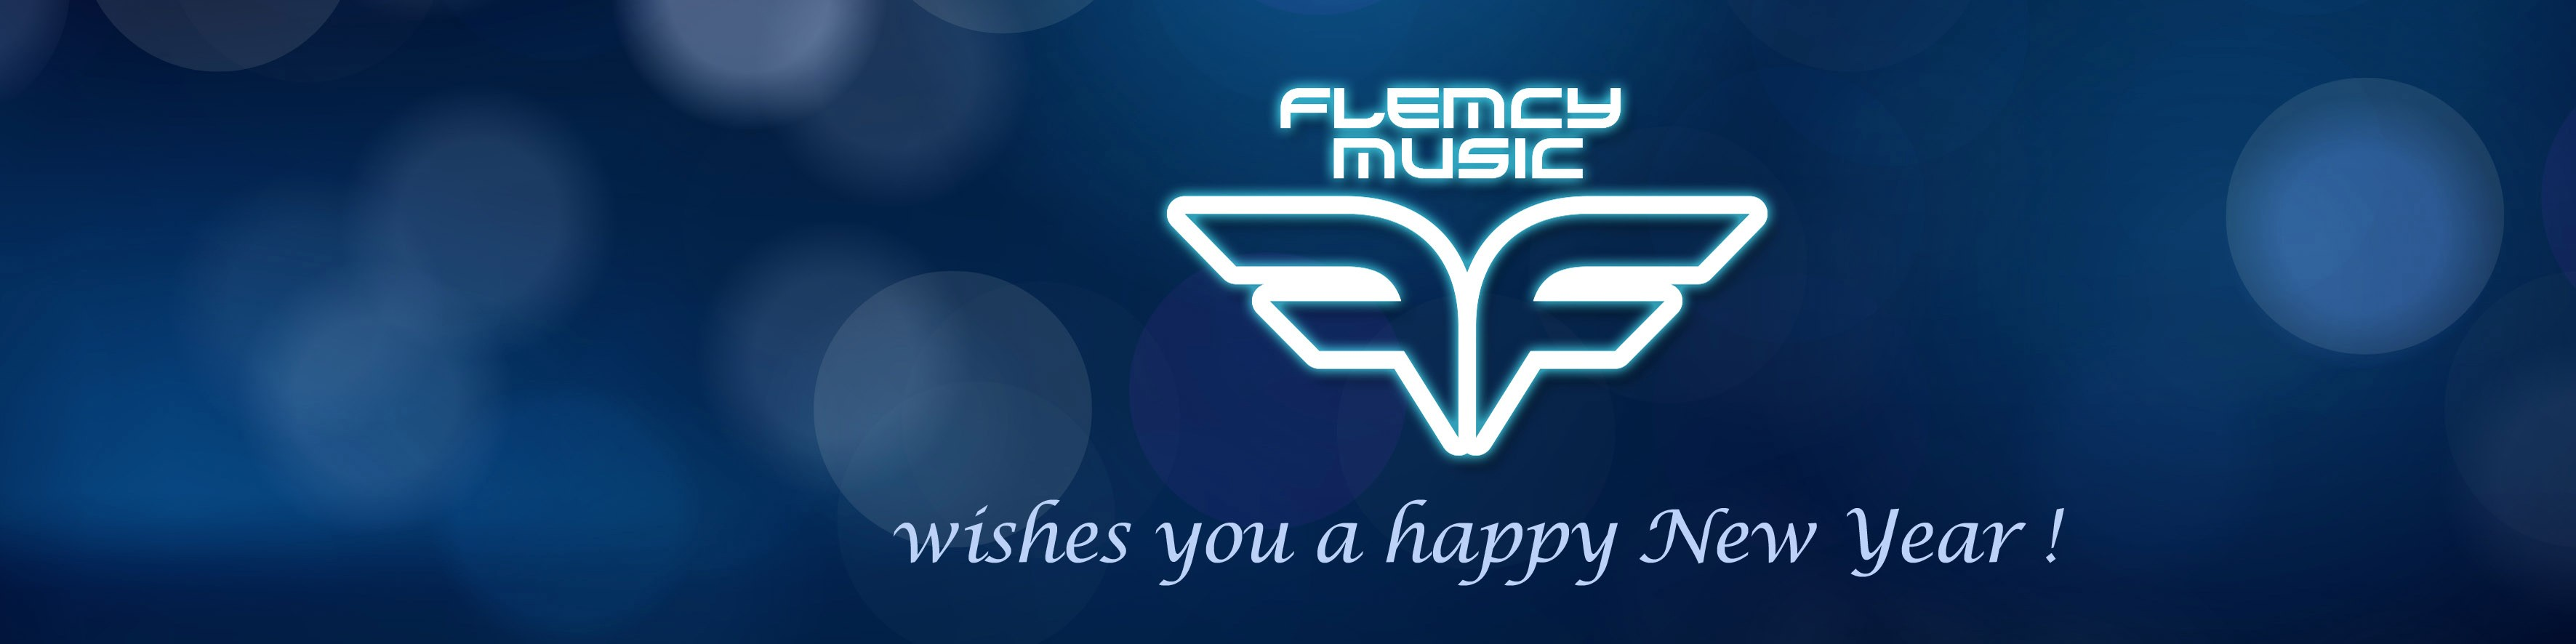 flemcy-banner-08-slider-wishes-you-a-happy-new-year